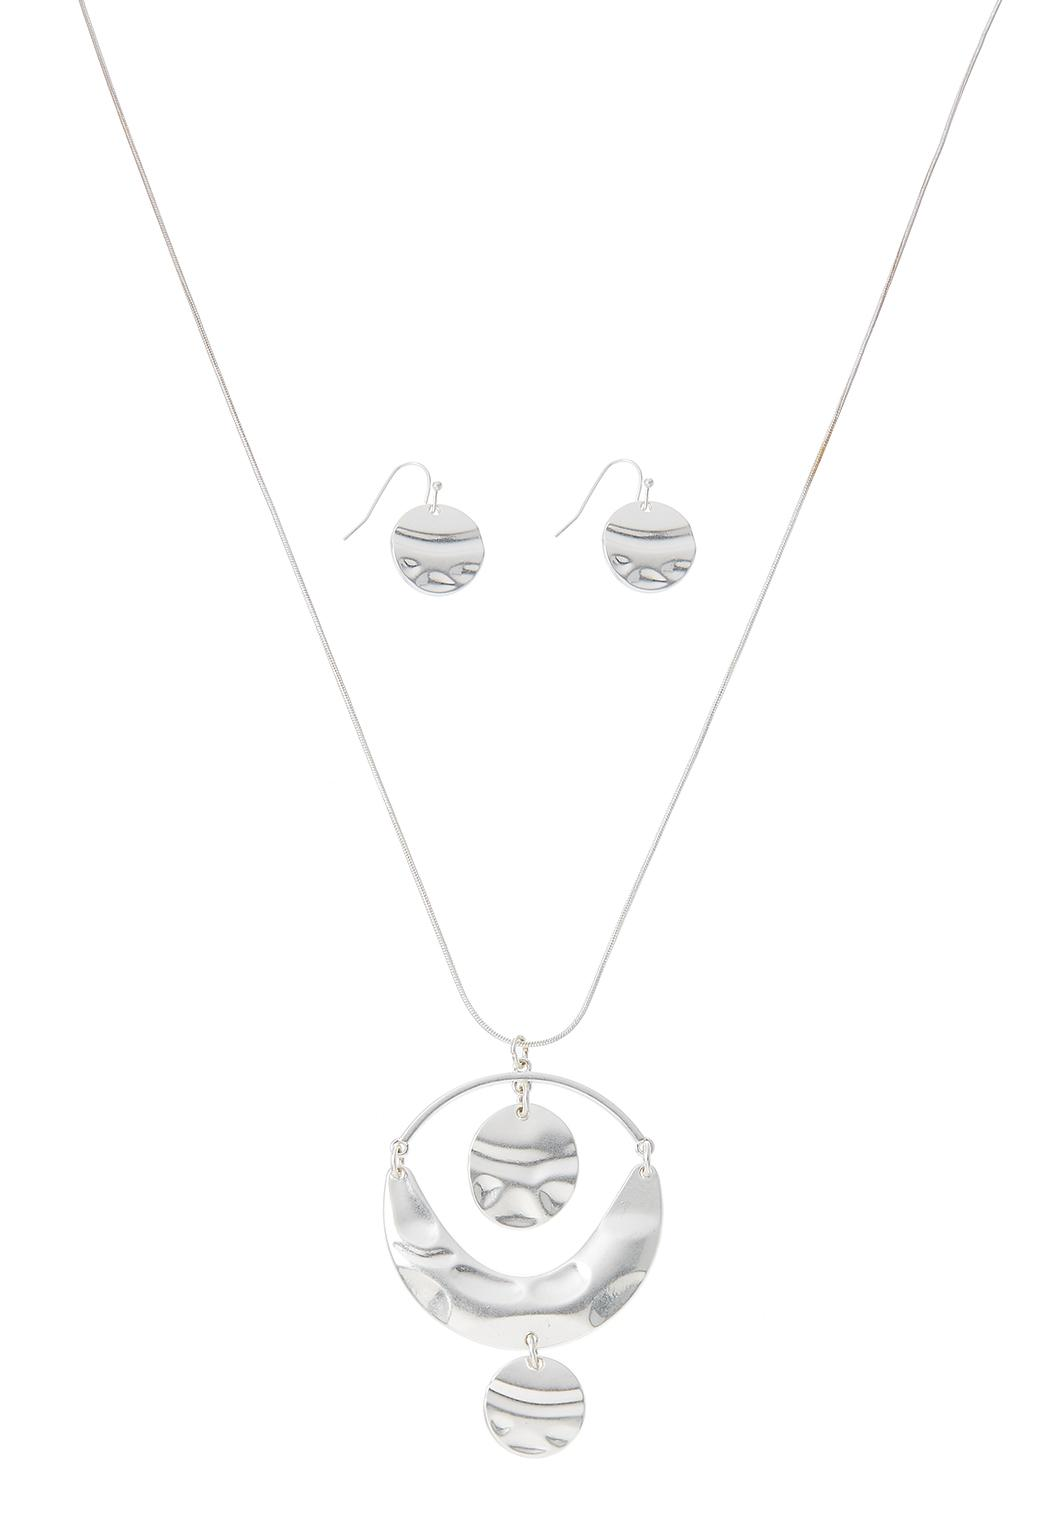 Hammered Pendant And Earrings Set